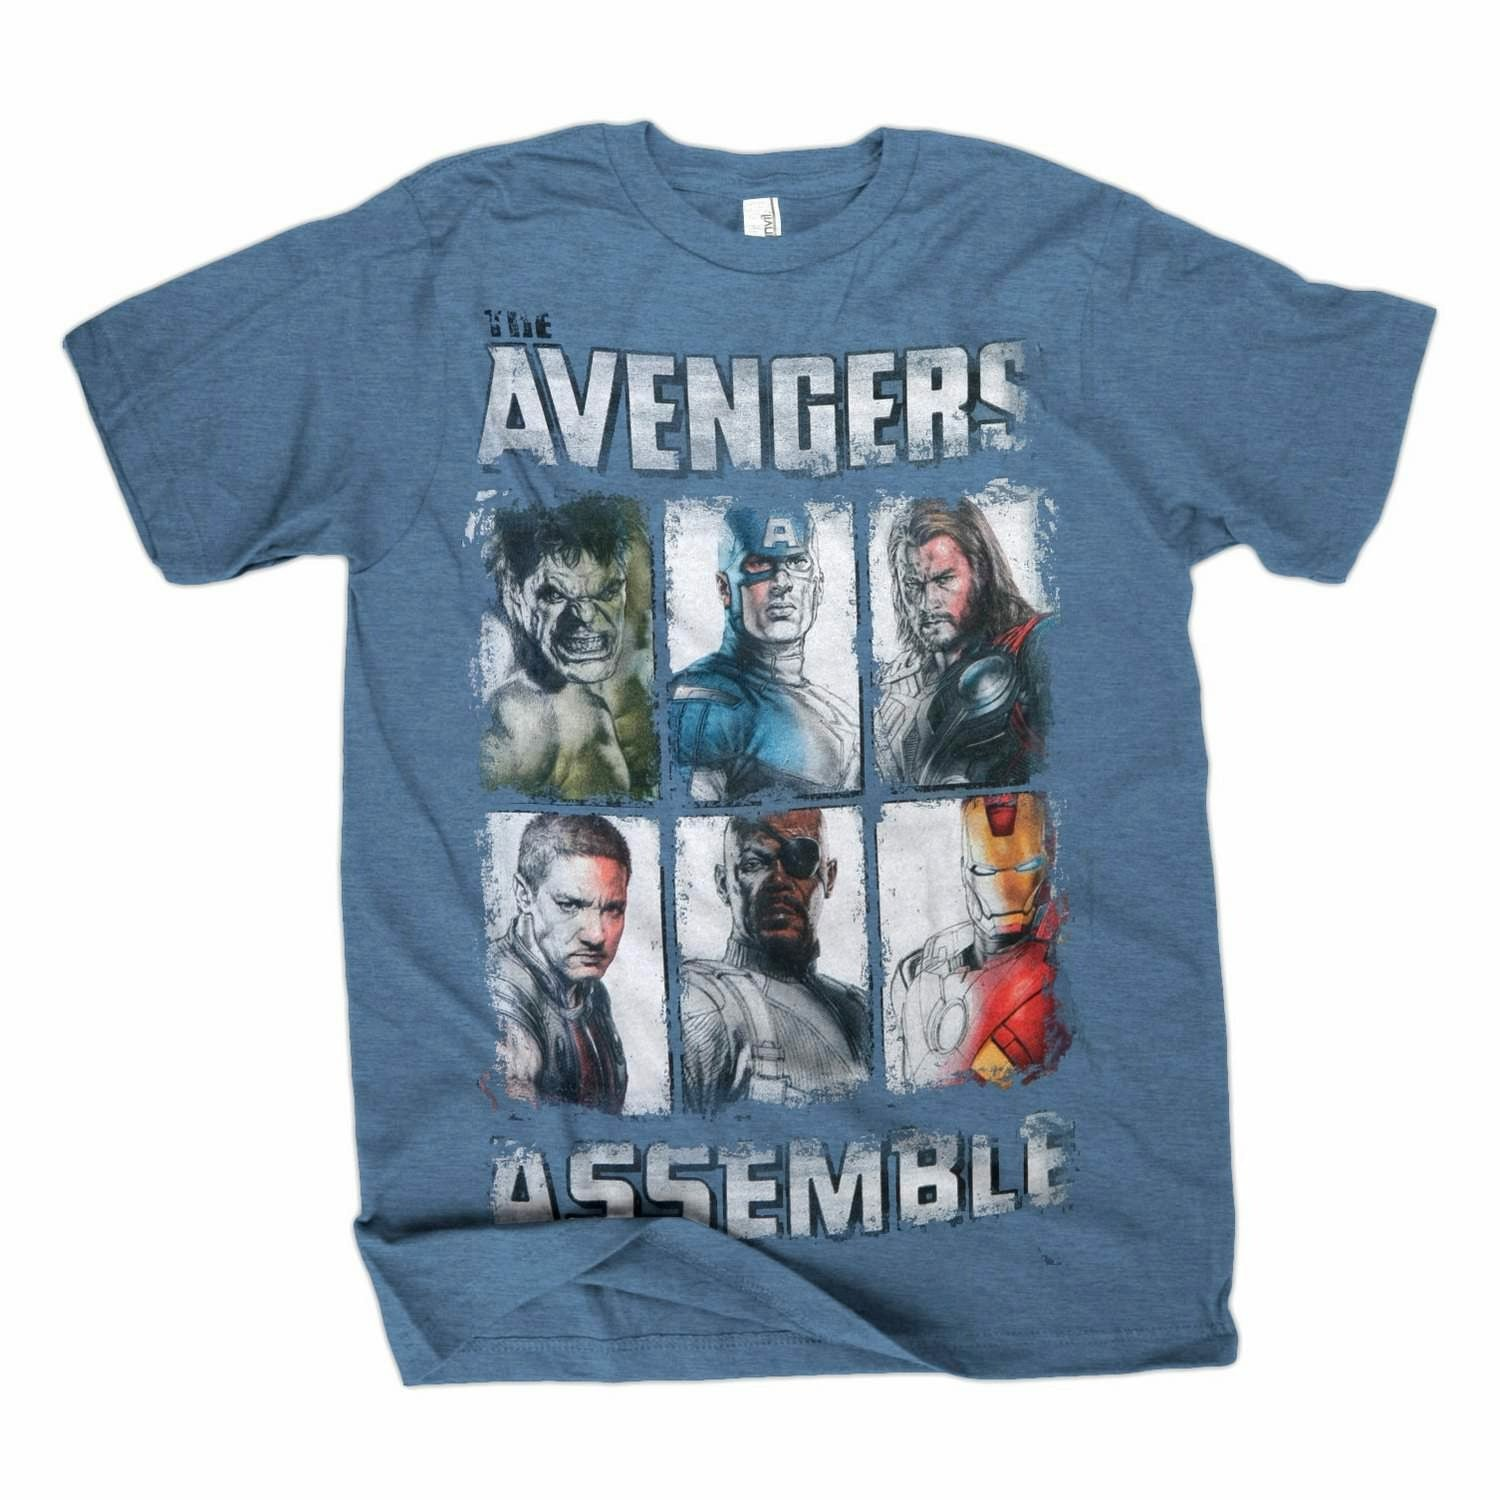 The Avengers Movie Assemble Group Shot Slate T-Shirt